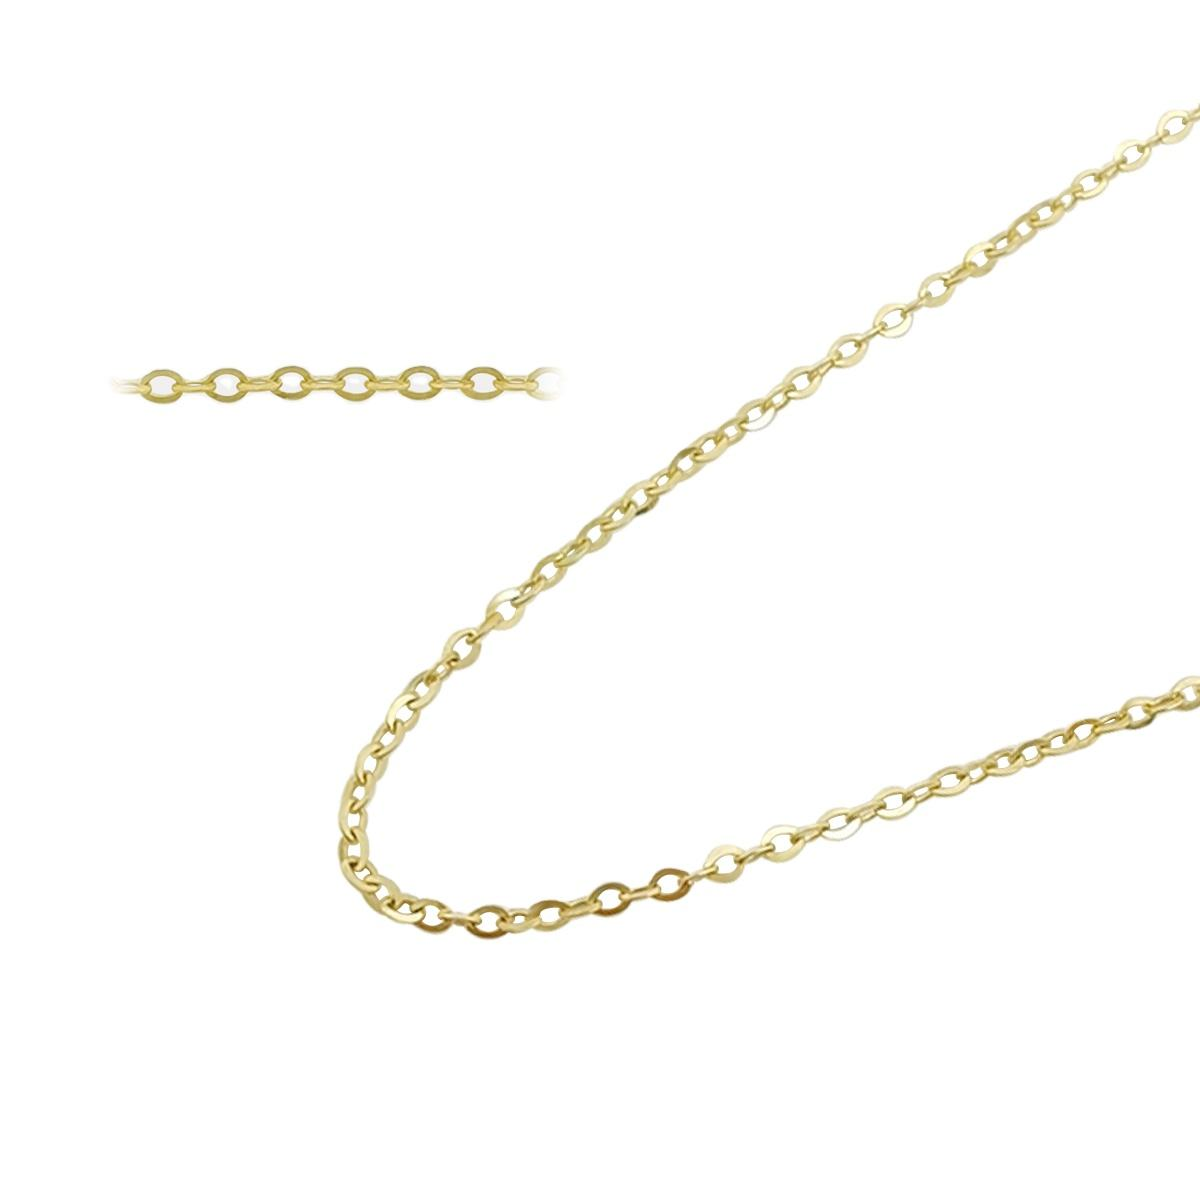 Wholesale Solid Gold Chain Women Necklace,Thin Flat Cable Chain 9K 14K 18K Real Gold Tiny Chain Link Necklace Jewelry